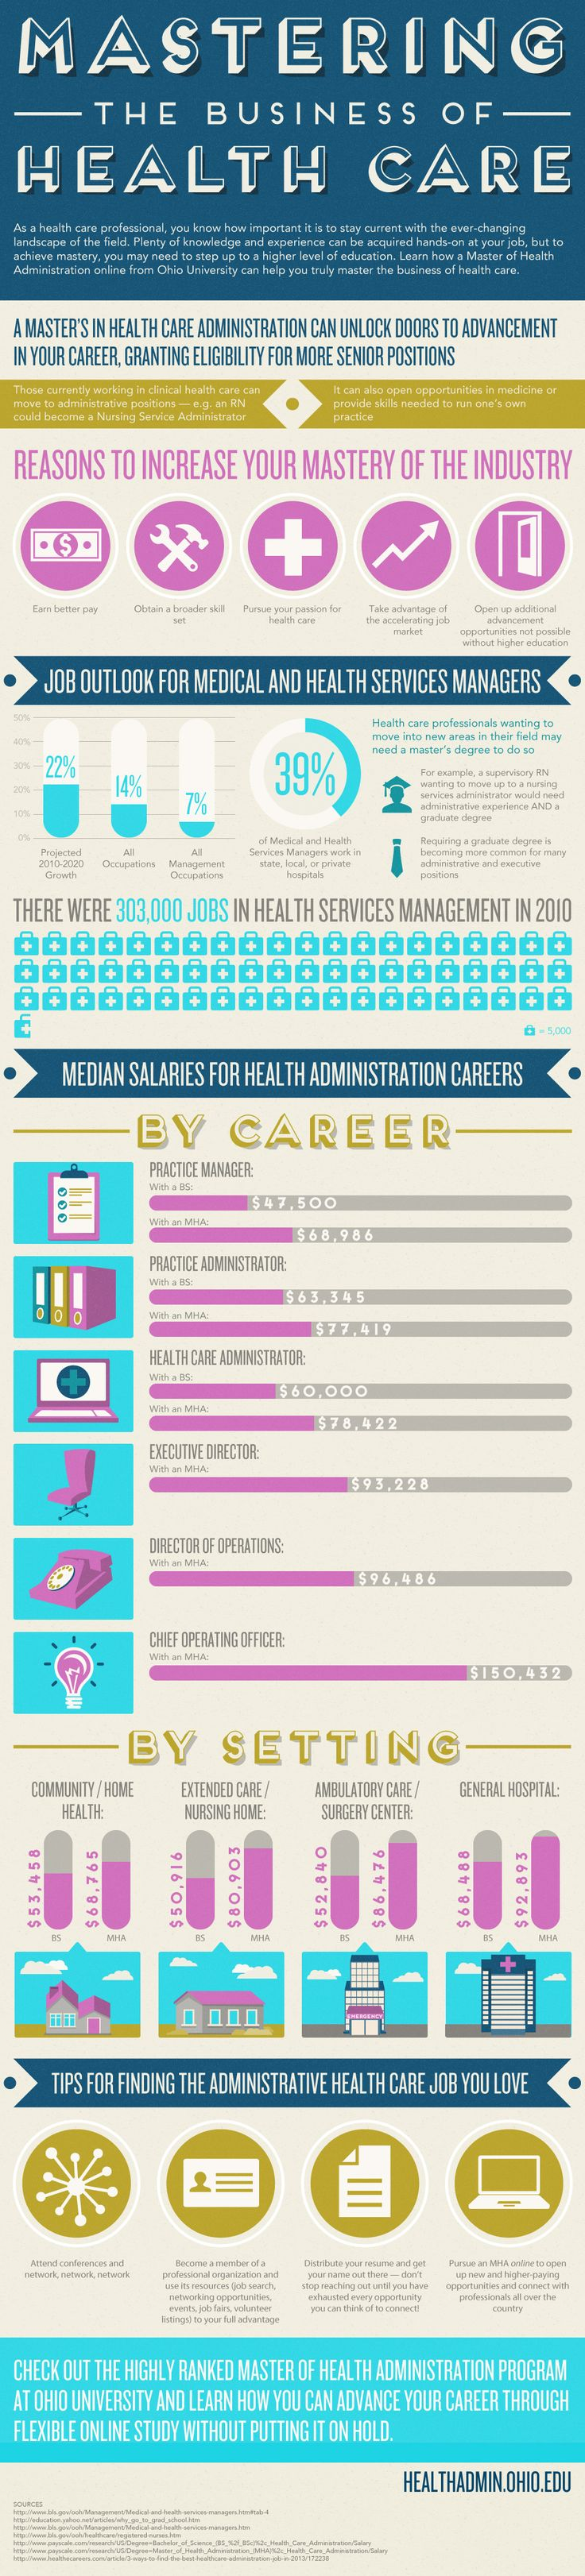 best ideas about healthcare administration as graduate degrees become more common for many adminstrative and executive postions in the healthcare space further education is definitely an option